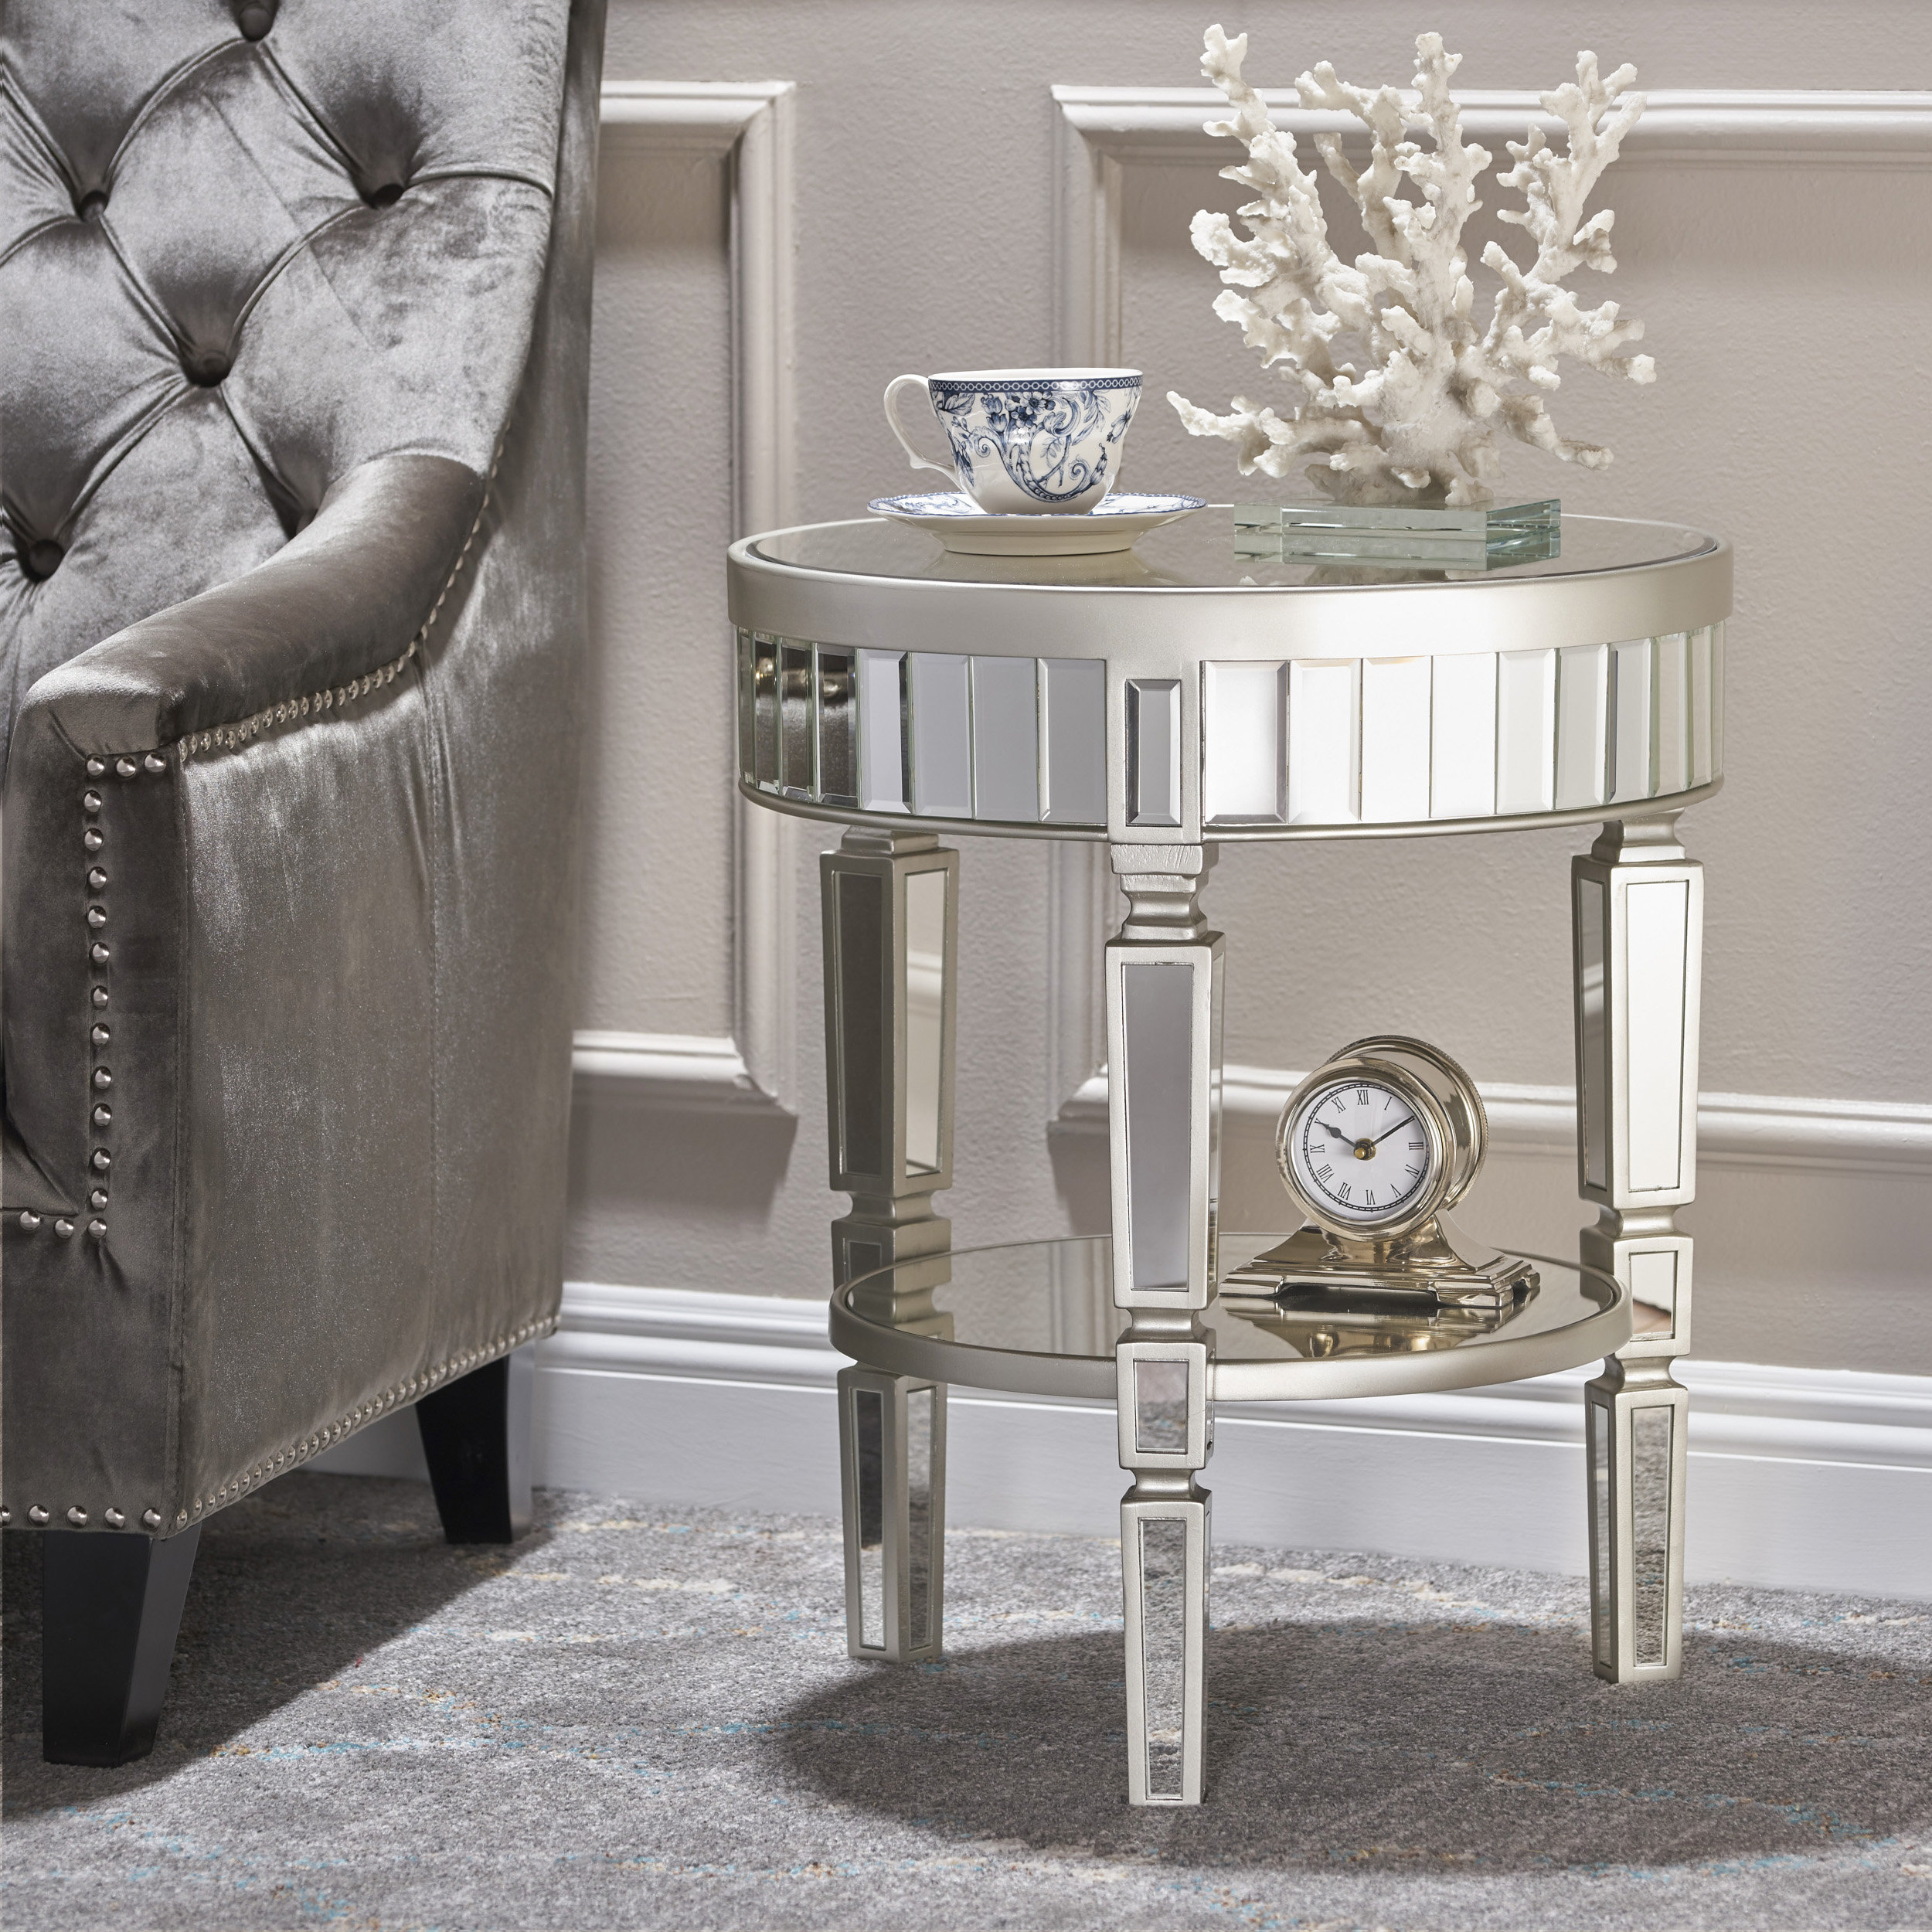 table dazzling mirrored end for your home decor hollywood side tables bedroom white bedside small glass accent with drawer american martinsville black iron pipe bench centre ideas